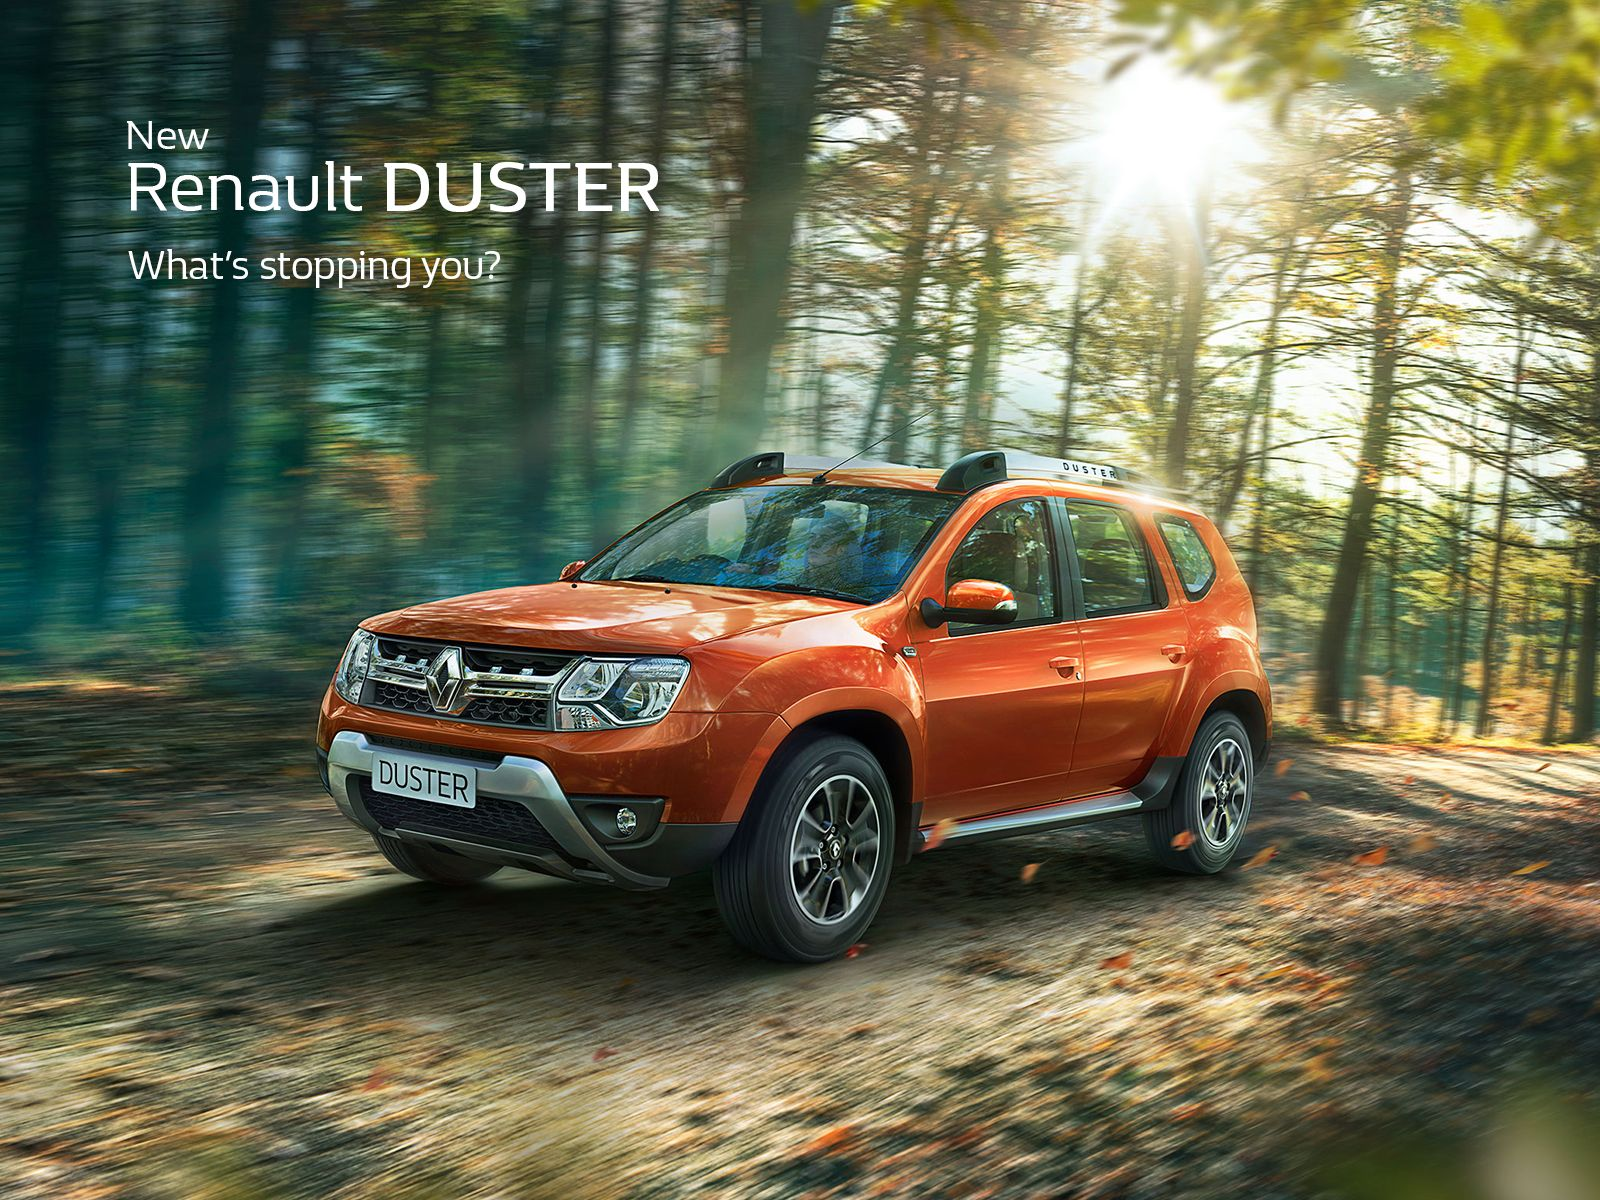 Renault Duster Multiple Choices Are Always Better Available In